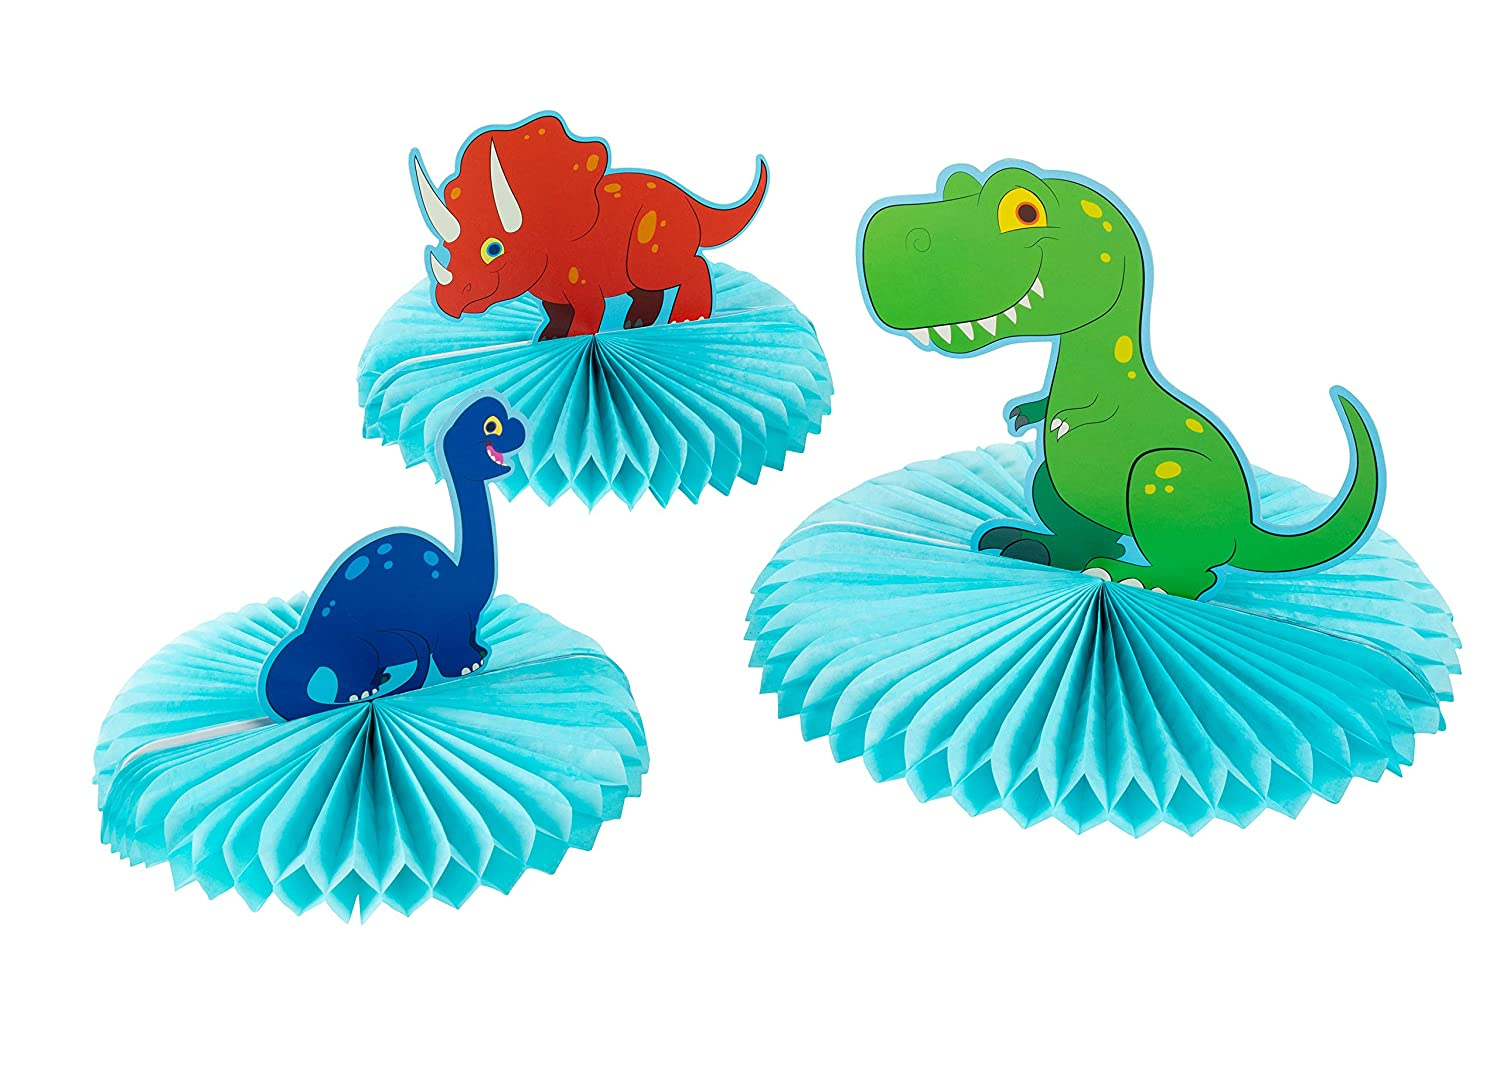 Dinosaur Party Decoration - 3-Piece Dinosaur Honeycomb Decoration Centerpiece, Kids Birthday Party Supplies for Boys, T-Rex, Triceratops, and Brachiosaurus Juvale